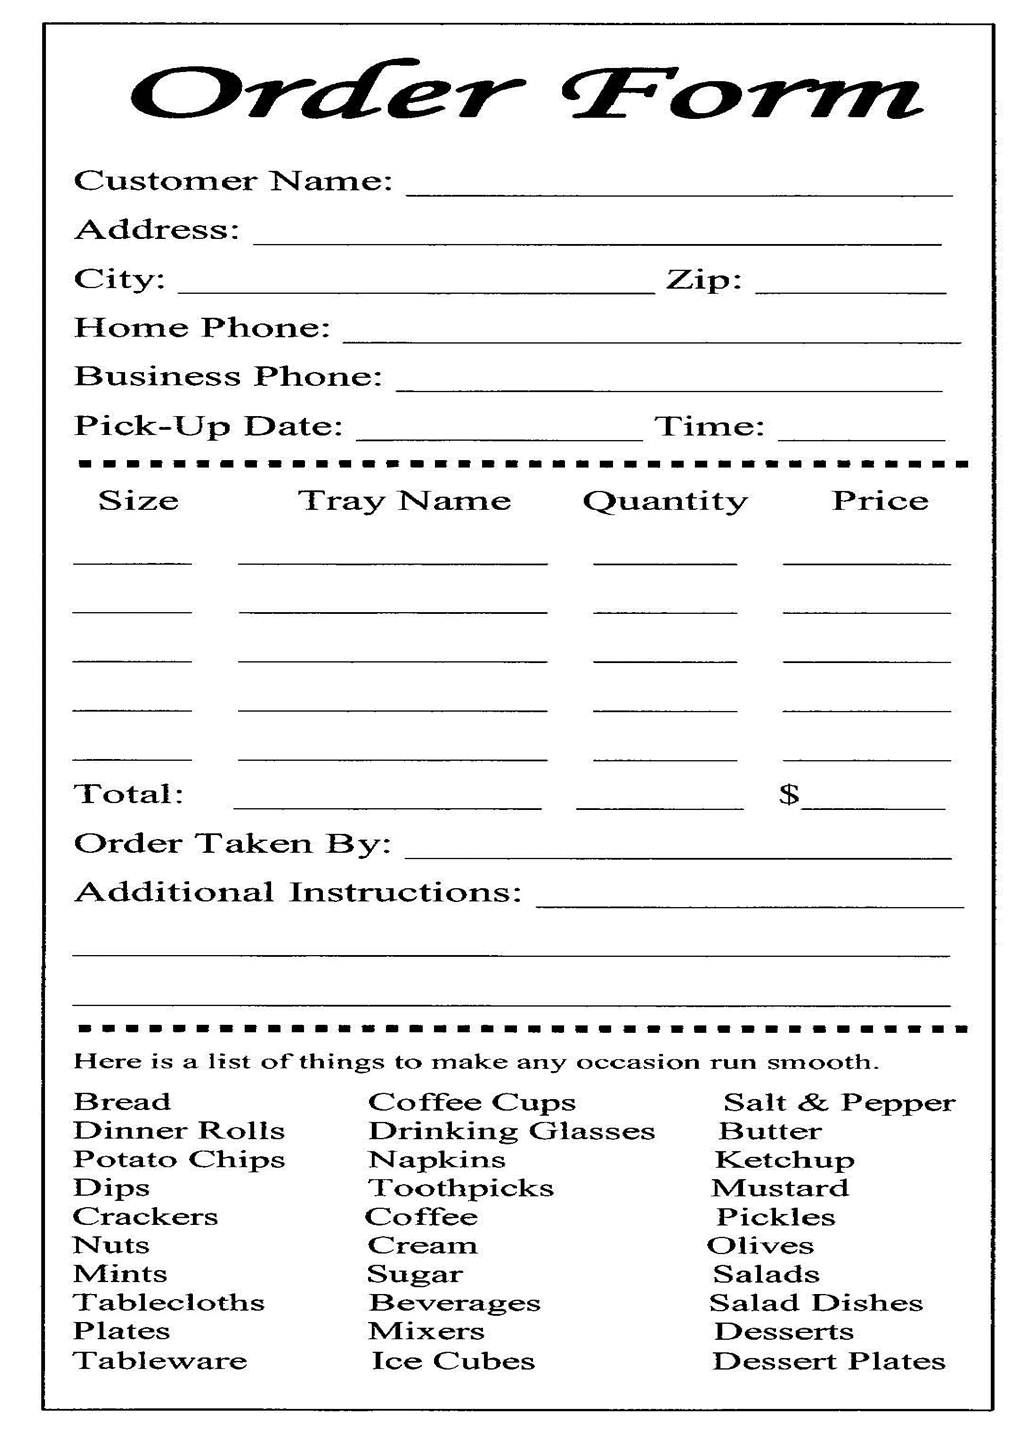 cake ball order form templates bakery order form template cake ball order form templates bakery order form template